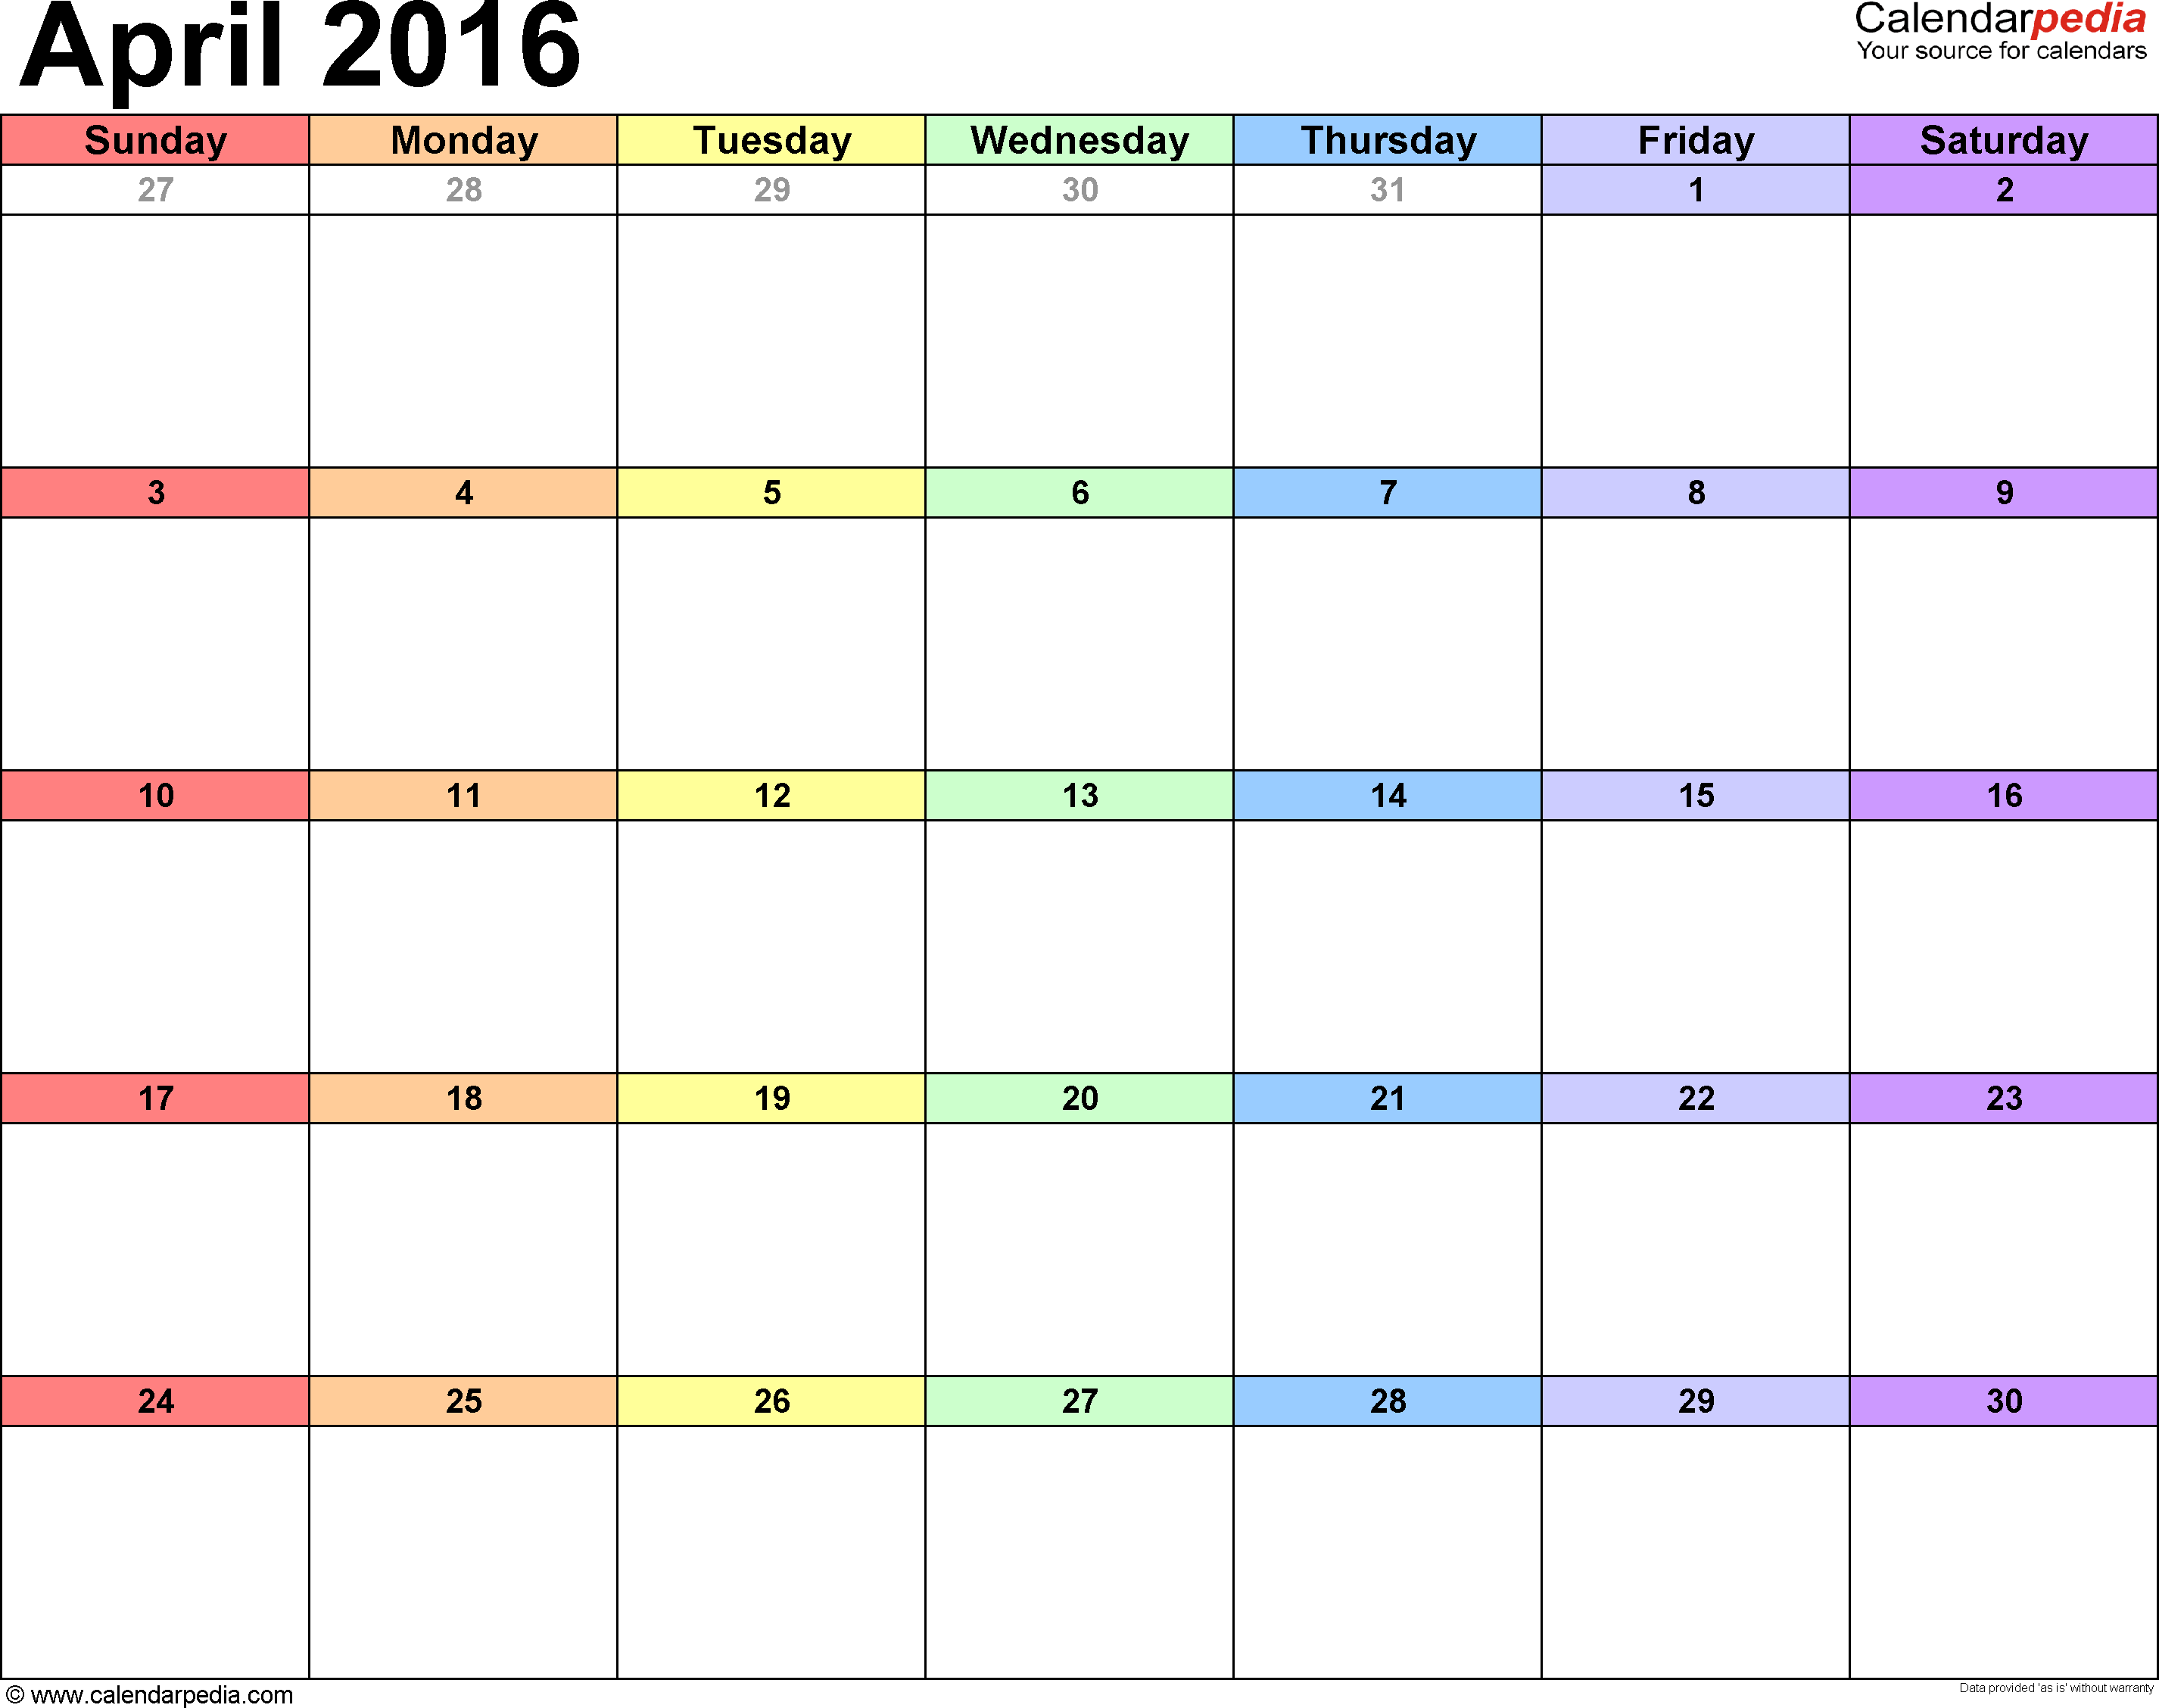 April 2016 calendar printable template